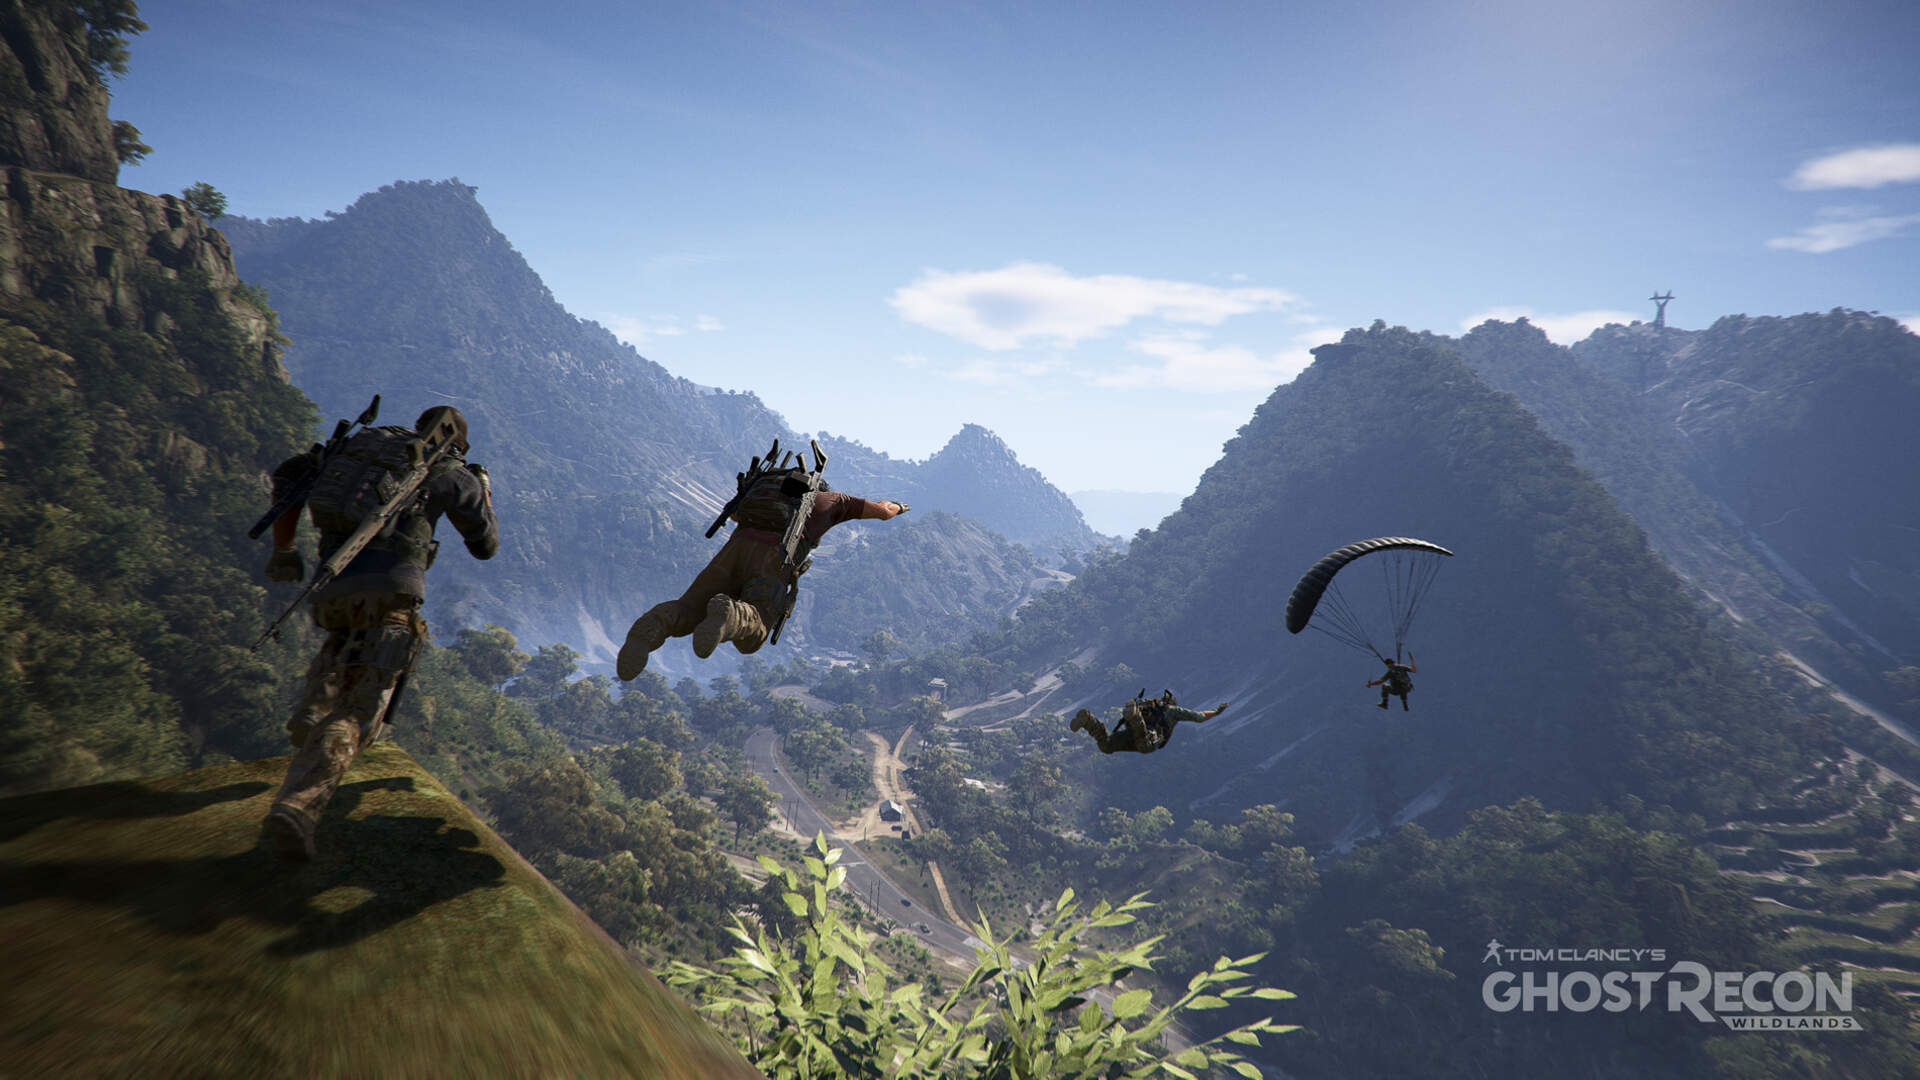 Ghost Recon Wildlands Really Needs an Endgame